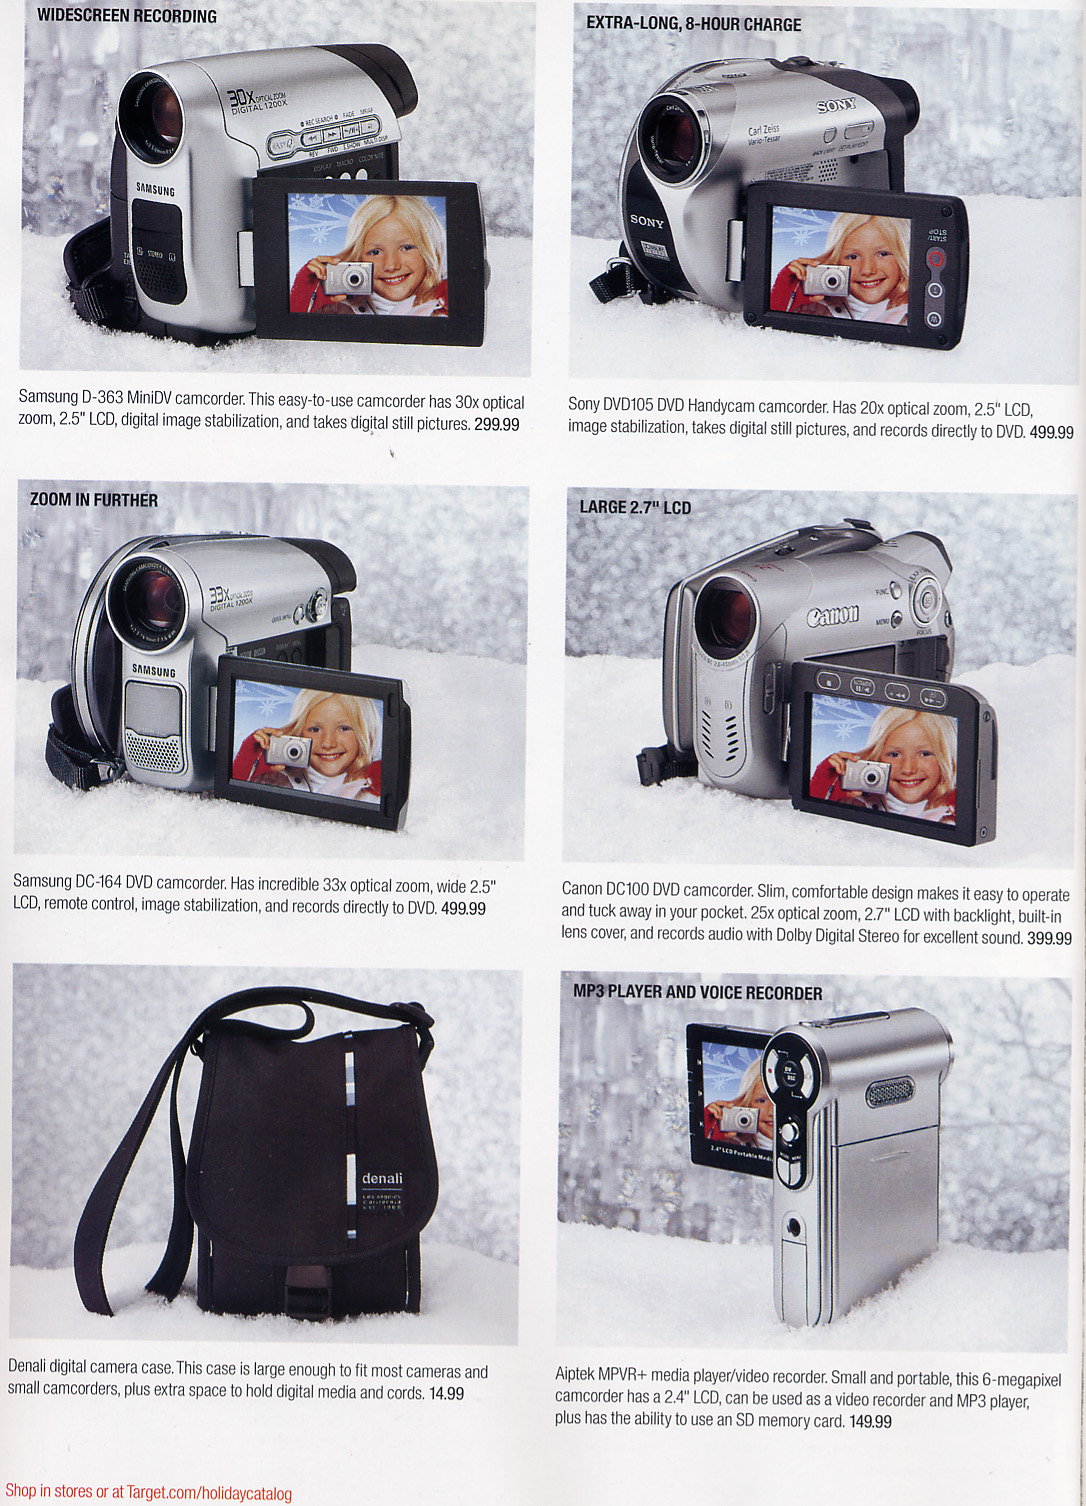 denali_digital_camera_case__2